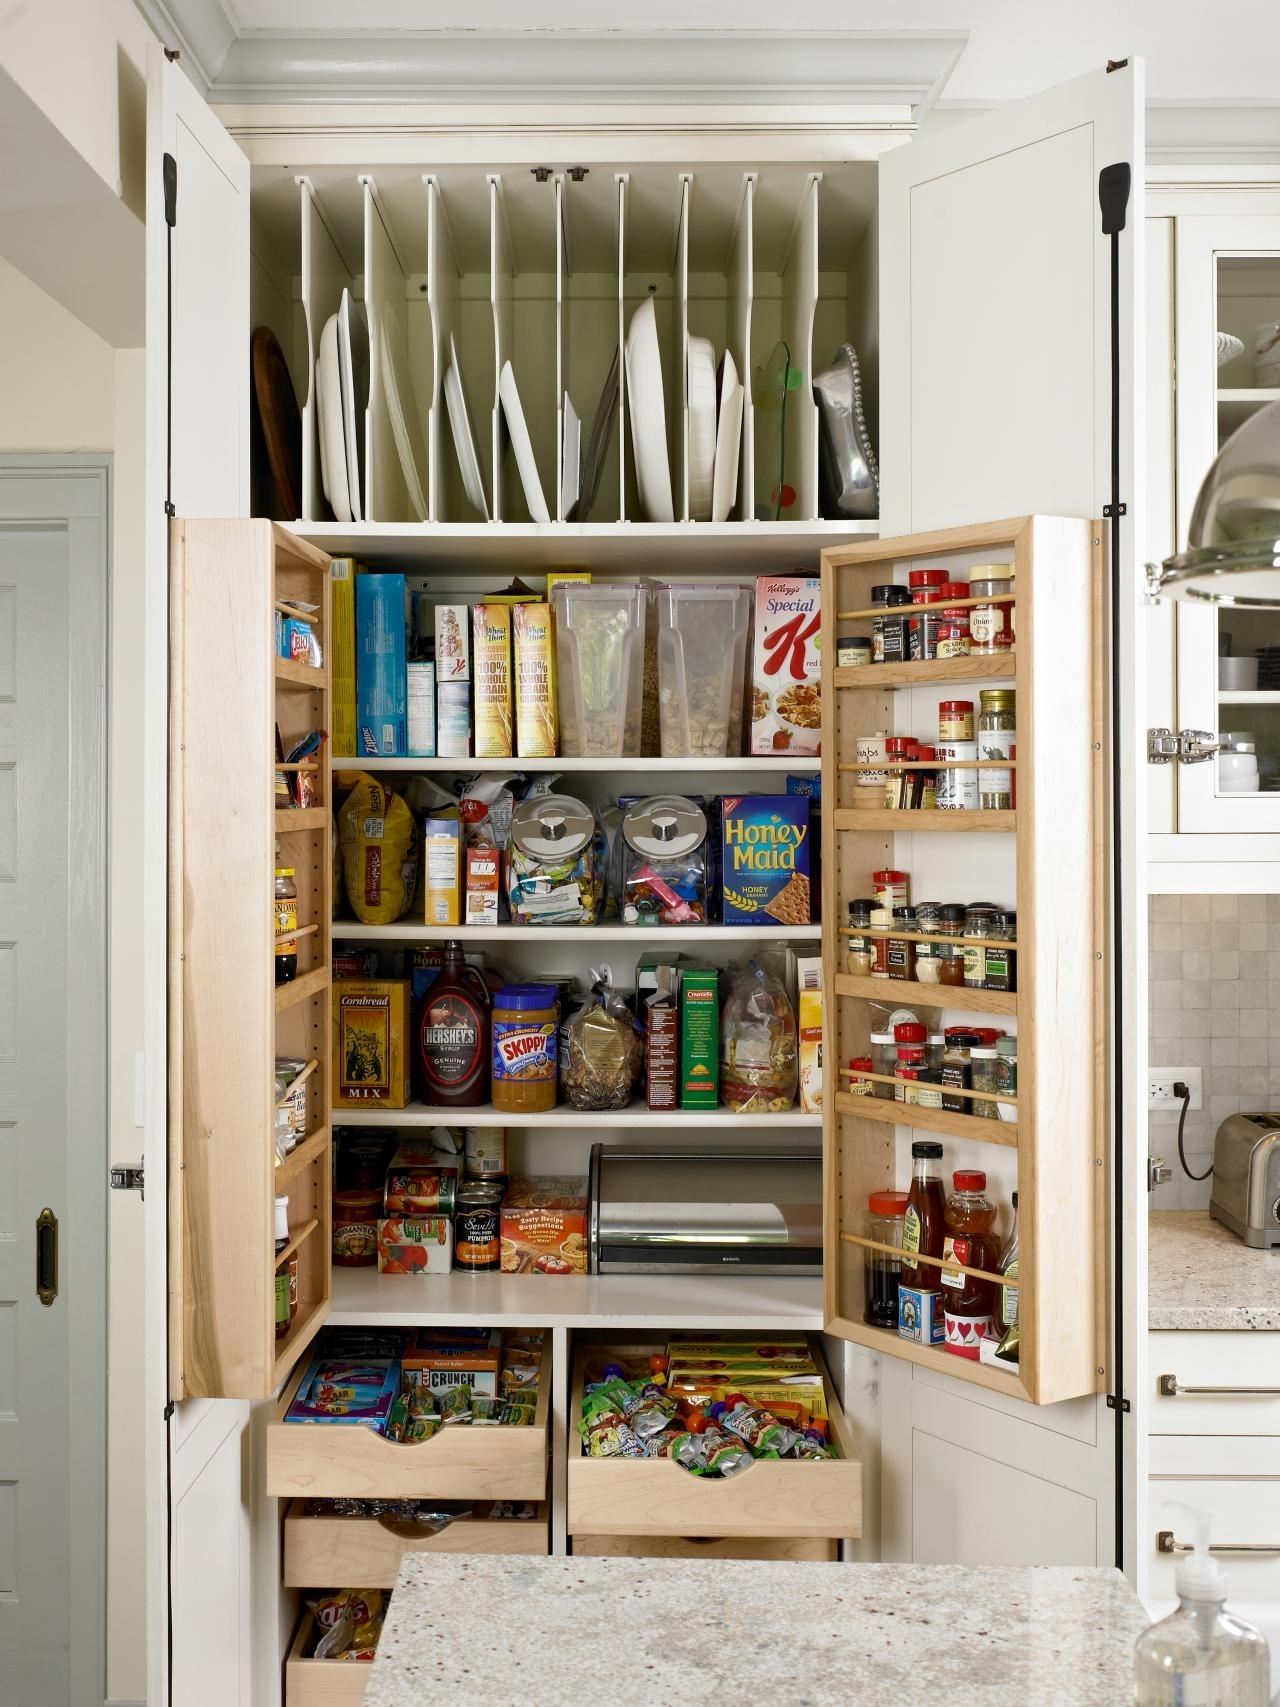 small kitchen storage ideas: pictures & tips from hgtv | hgtv